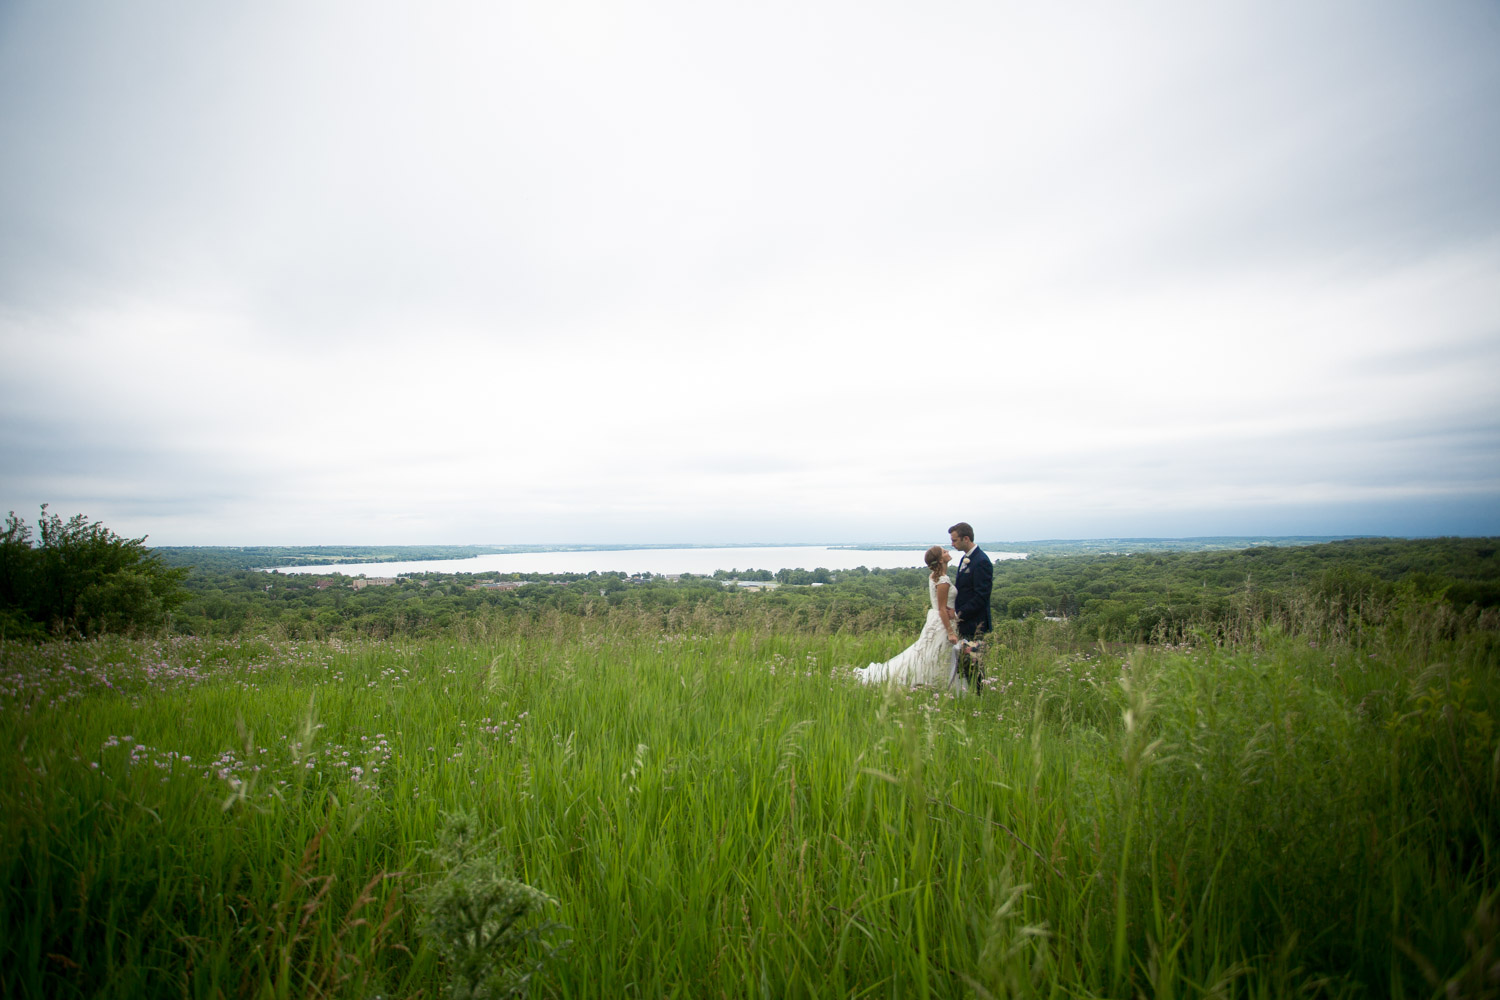 11-northern-minnesota-summer-lake-wedding-bride-groom-landscape-view-mahonen-photography.jpg